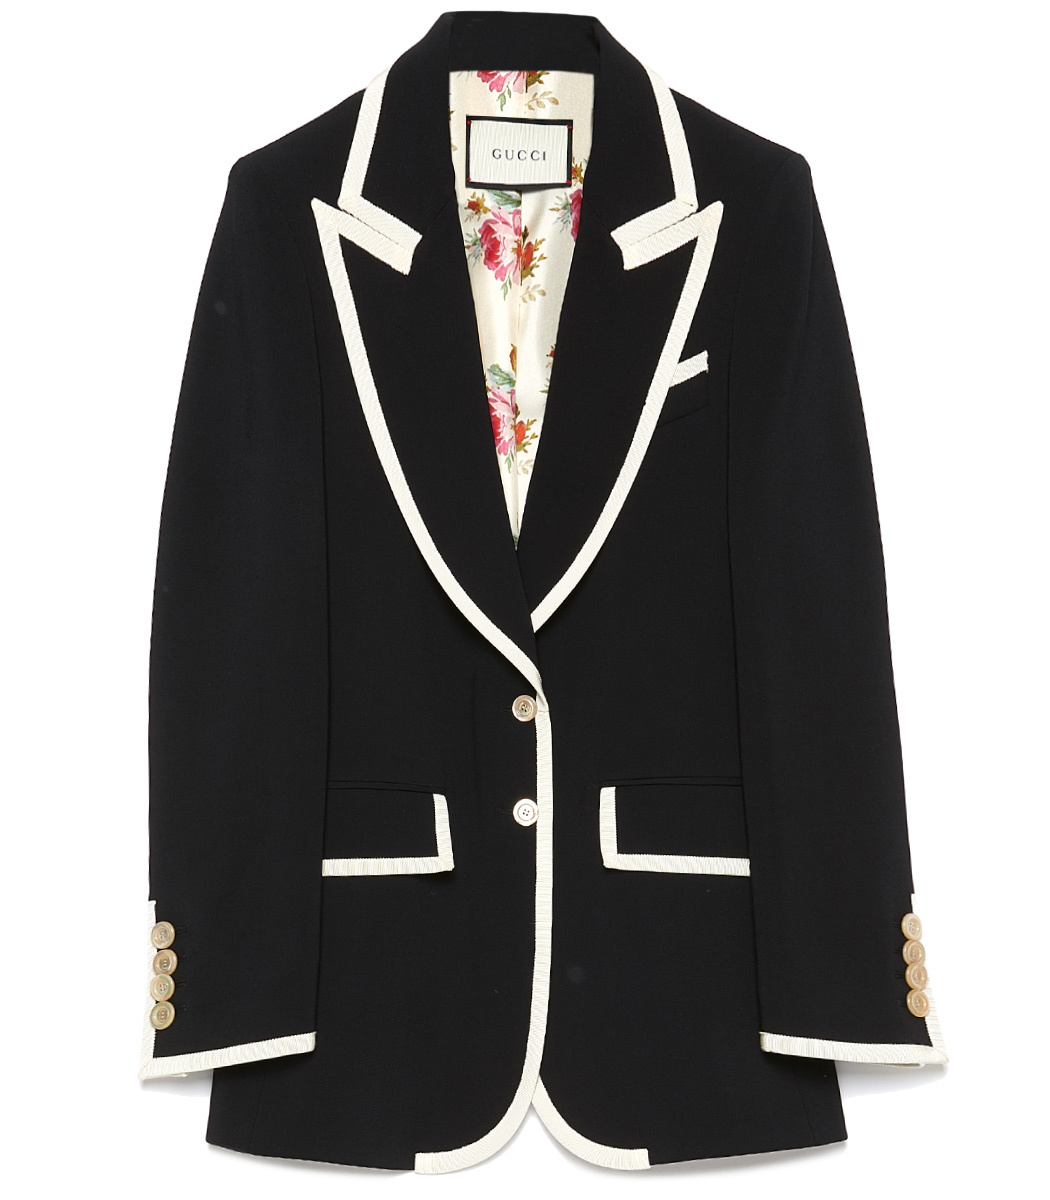 Contrast Trim Single Breasted Jacket, Black/Ivory